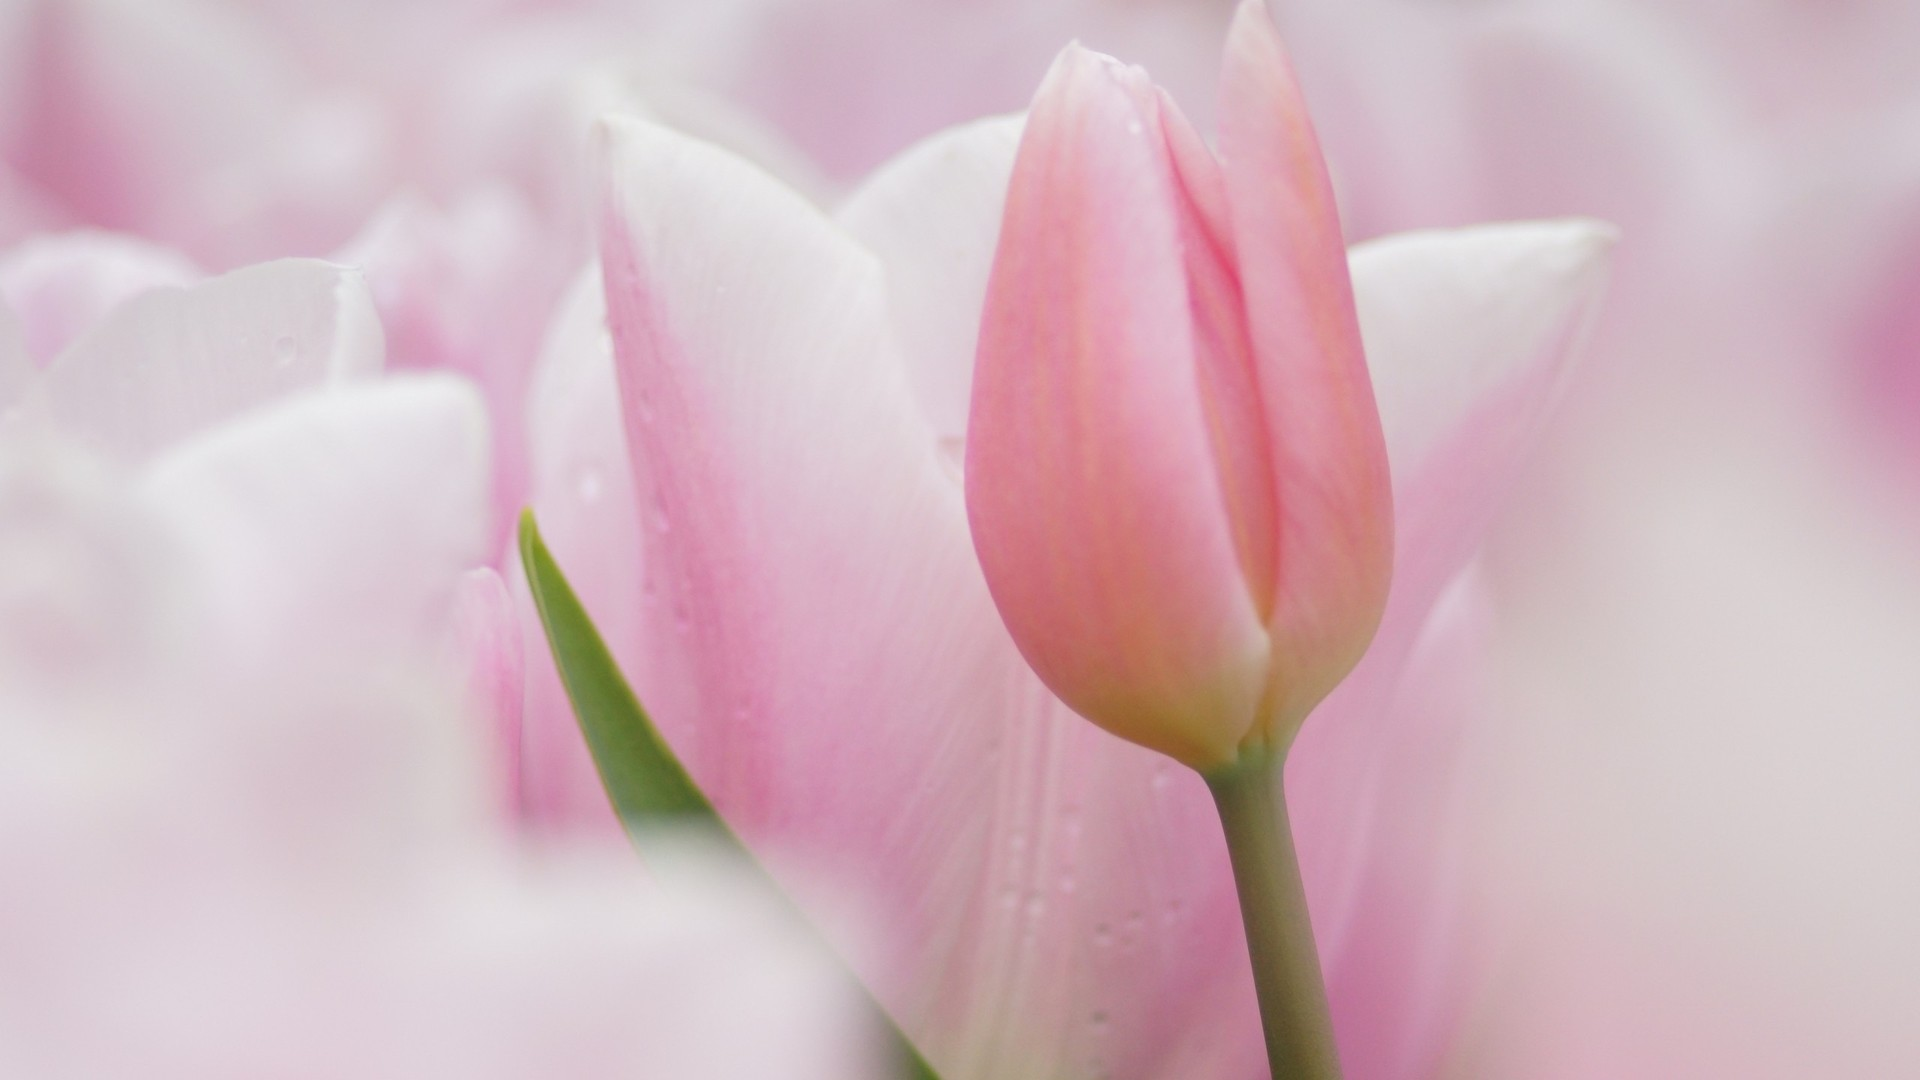 Res: 1920x1080, Download Pink tulips wallpaper